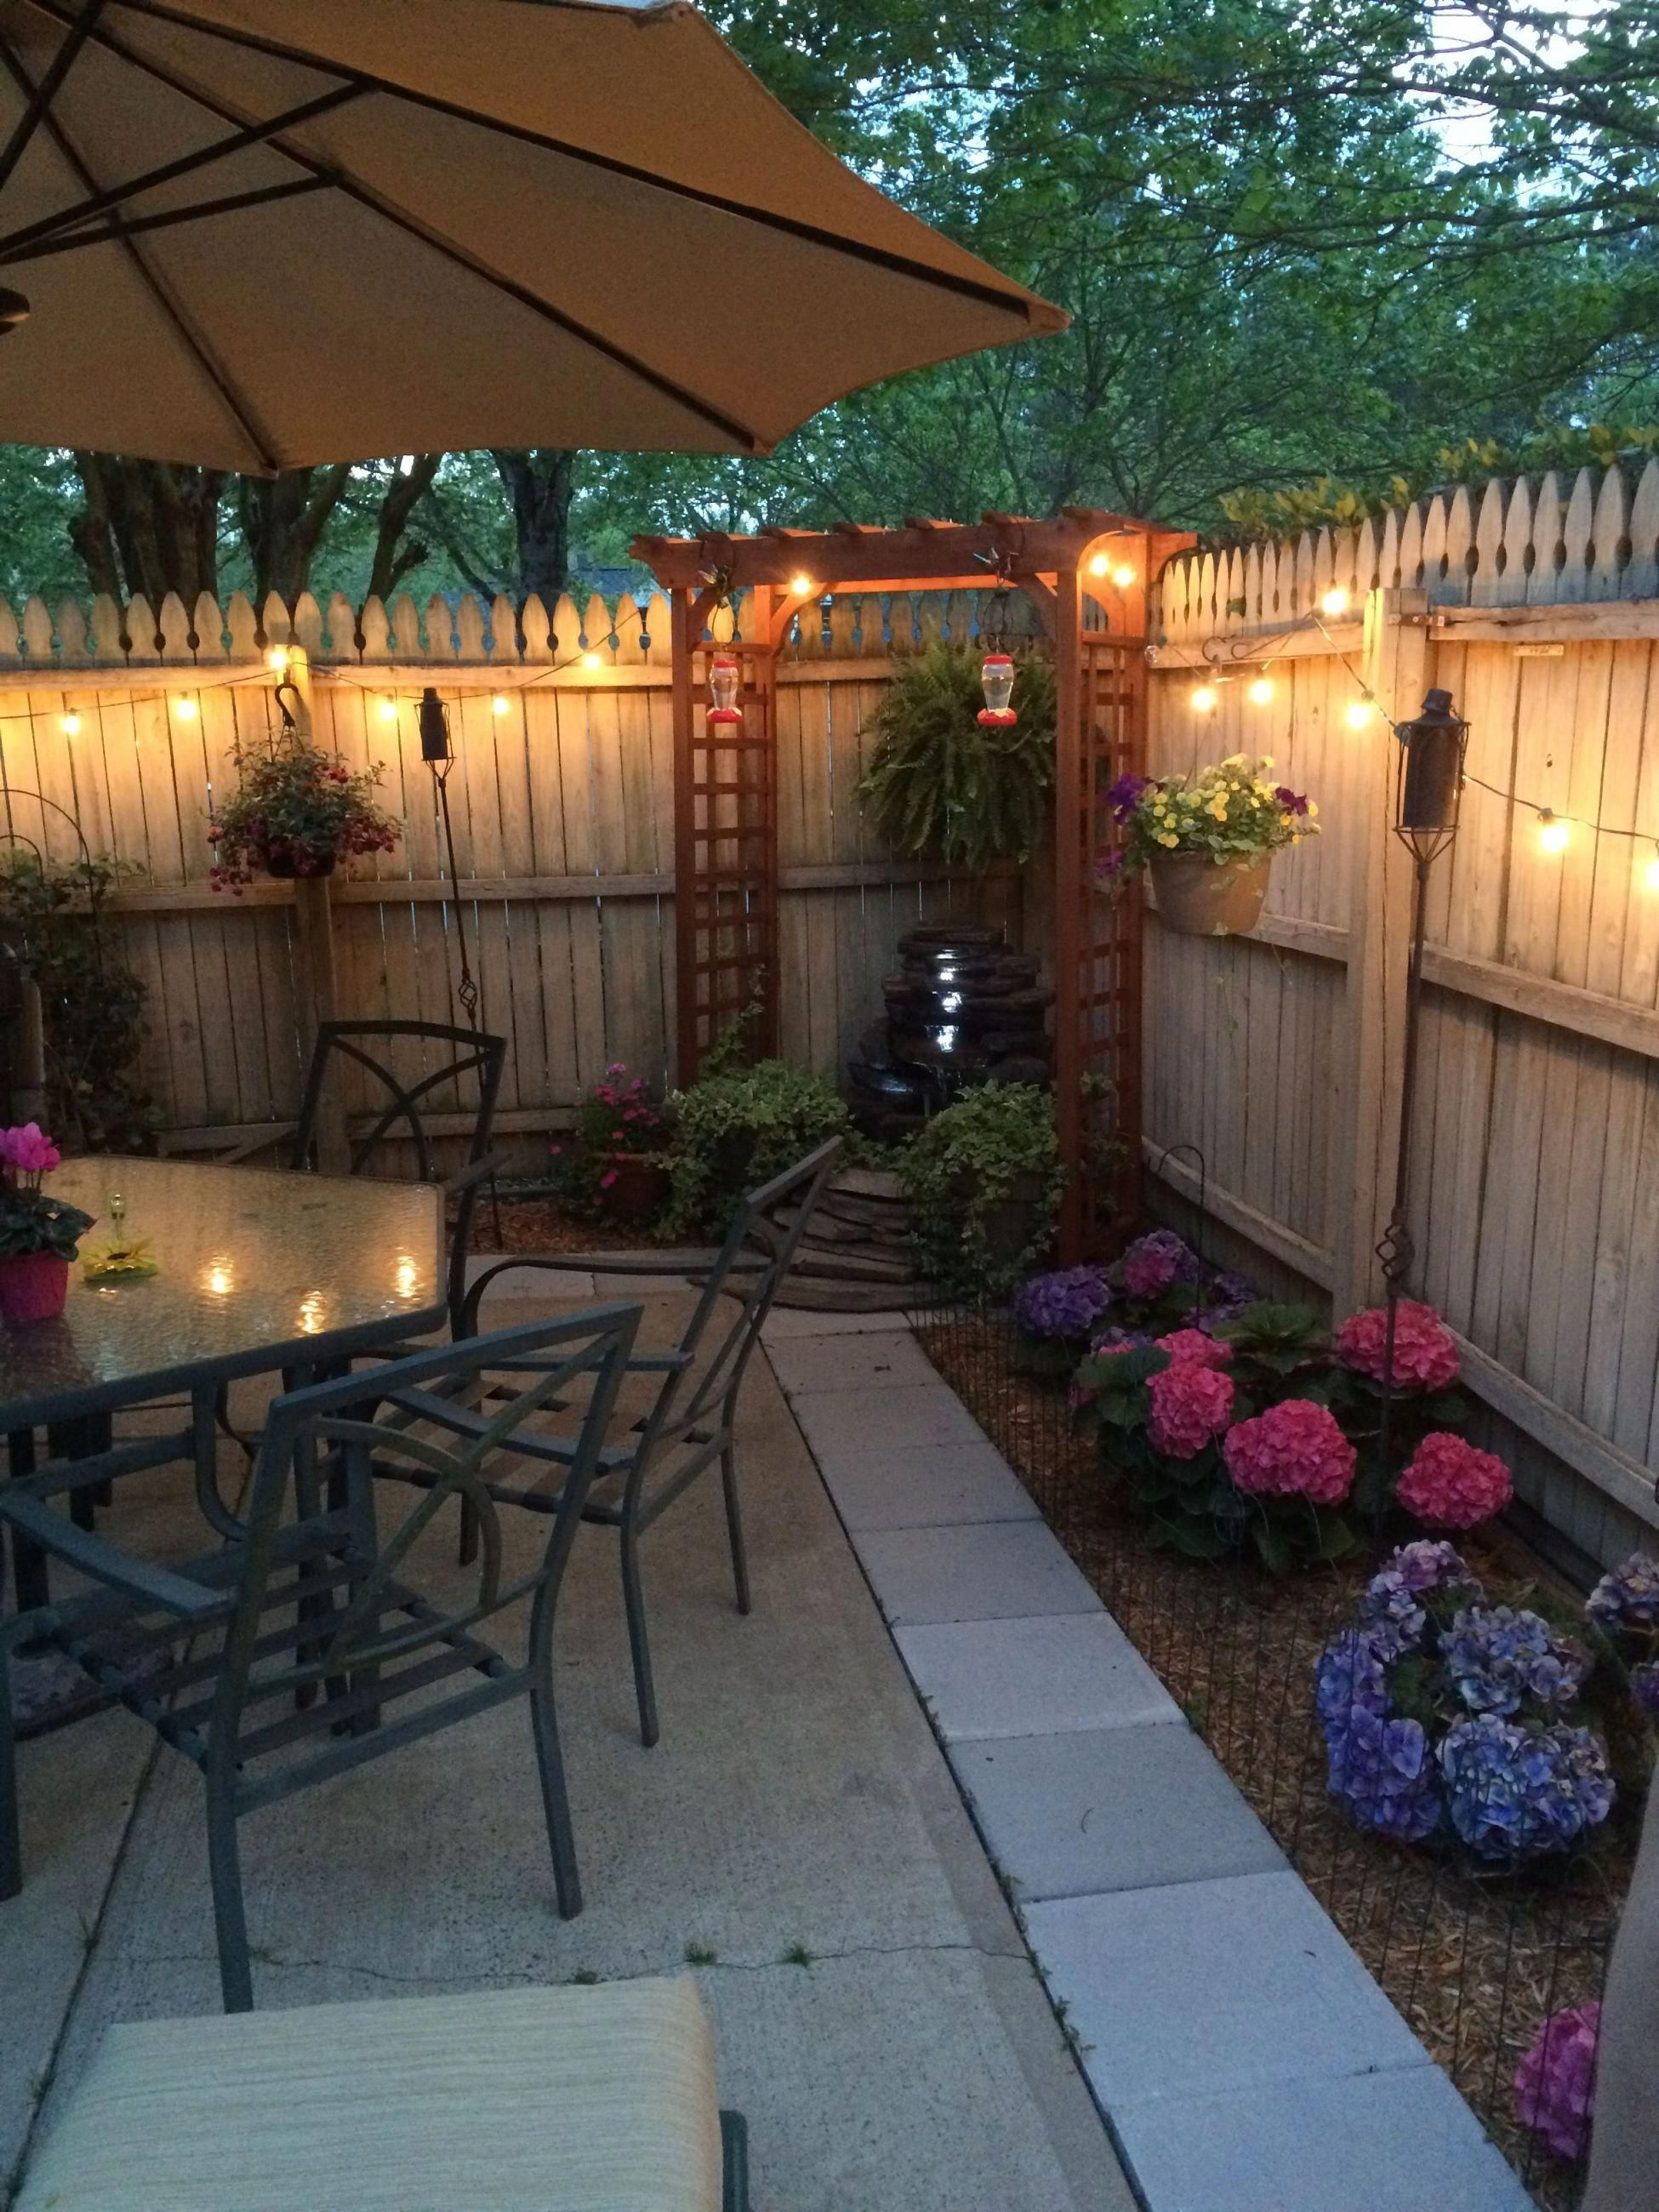 Search This Vital Graphics And Also Find Out The Presented Guidance On Easy Landscape Id Backyard Patio Backyard Landscaping Designs Small Backyard Landscaping Small backyard patio garden ideas